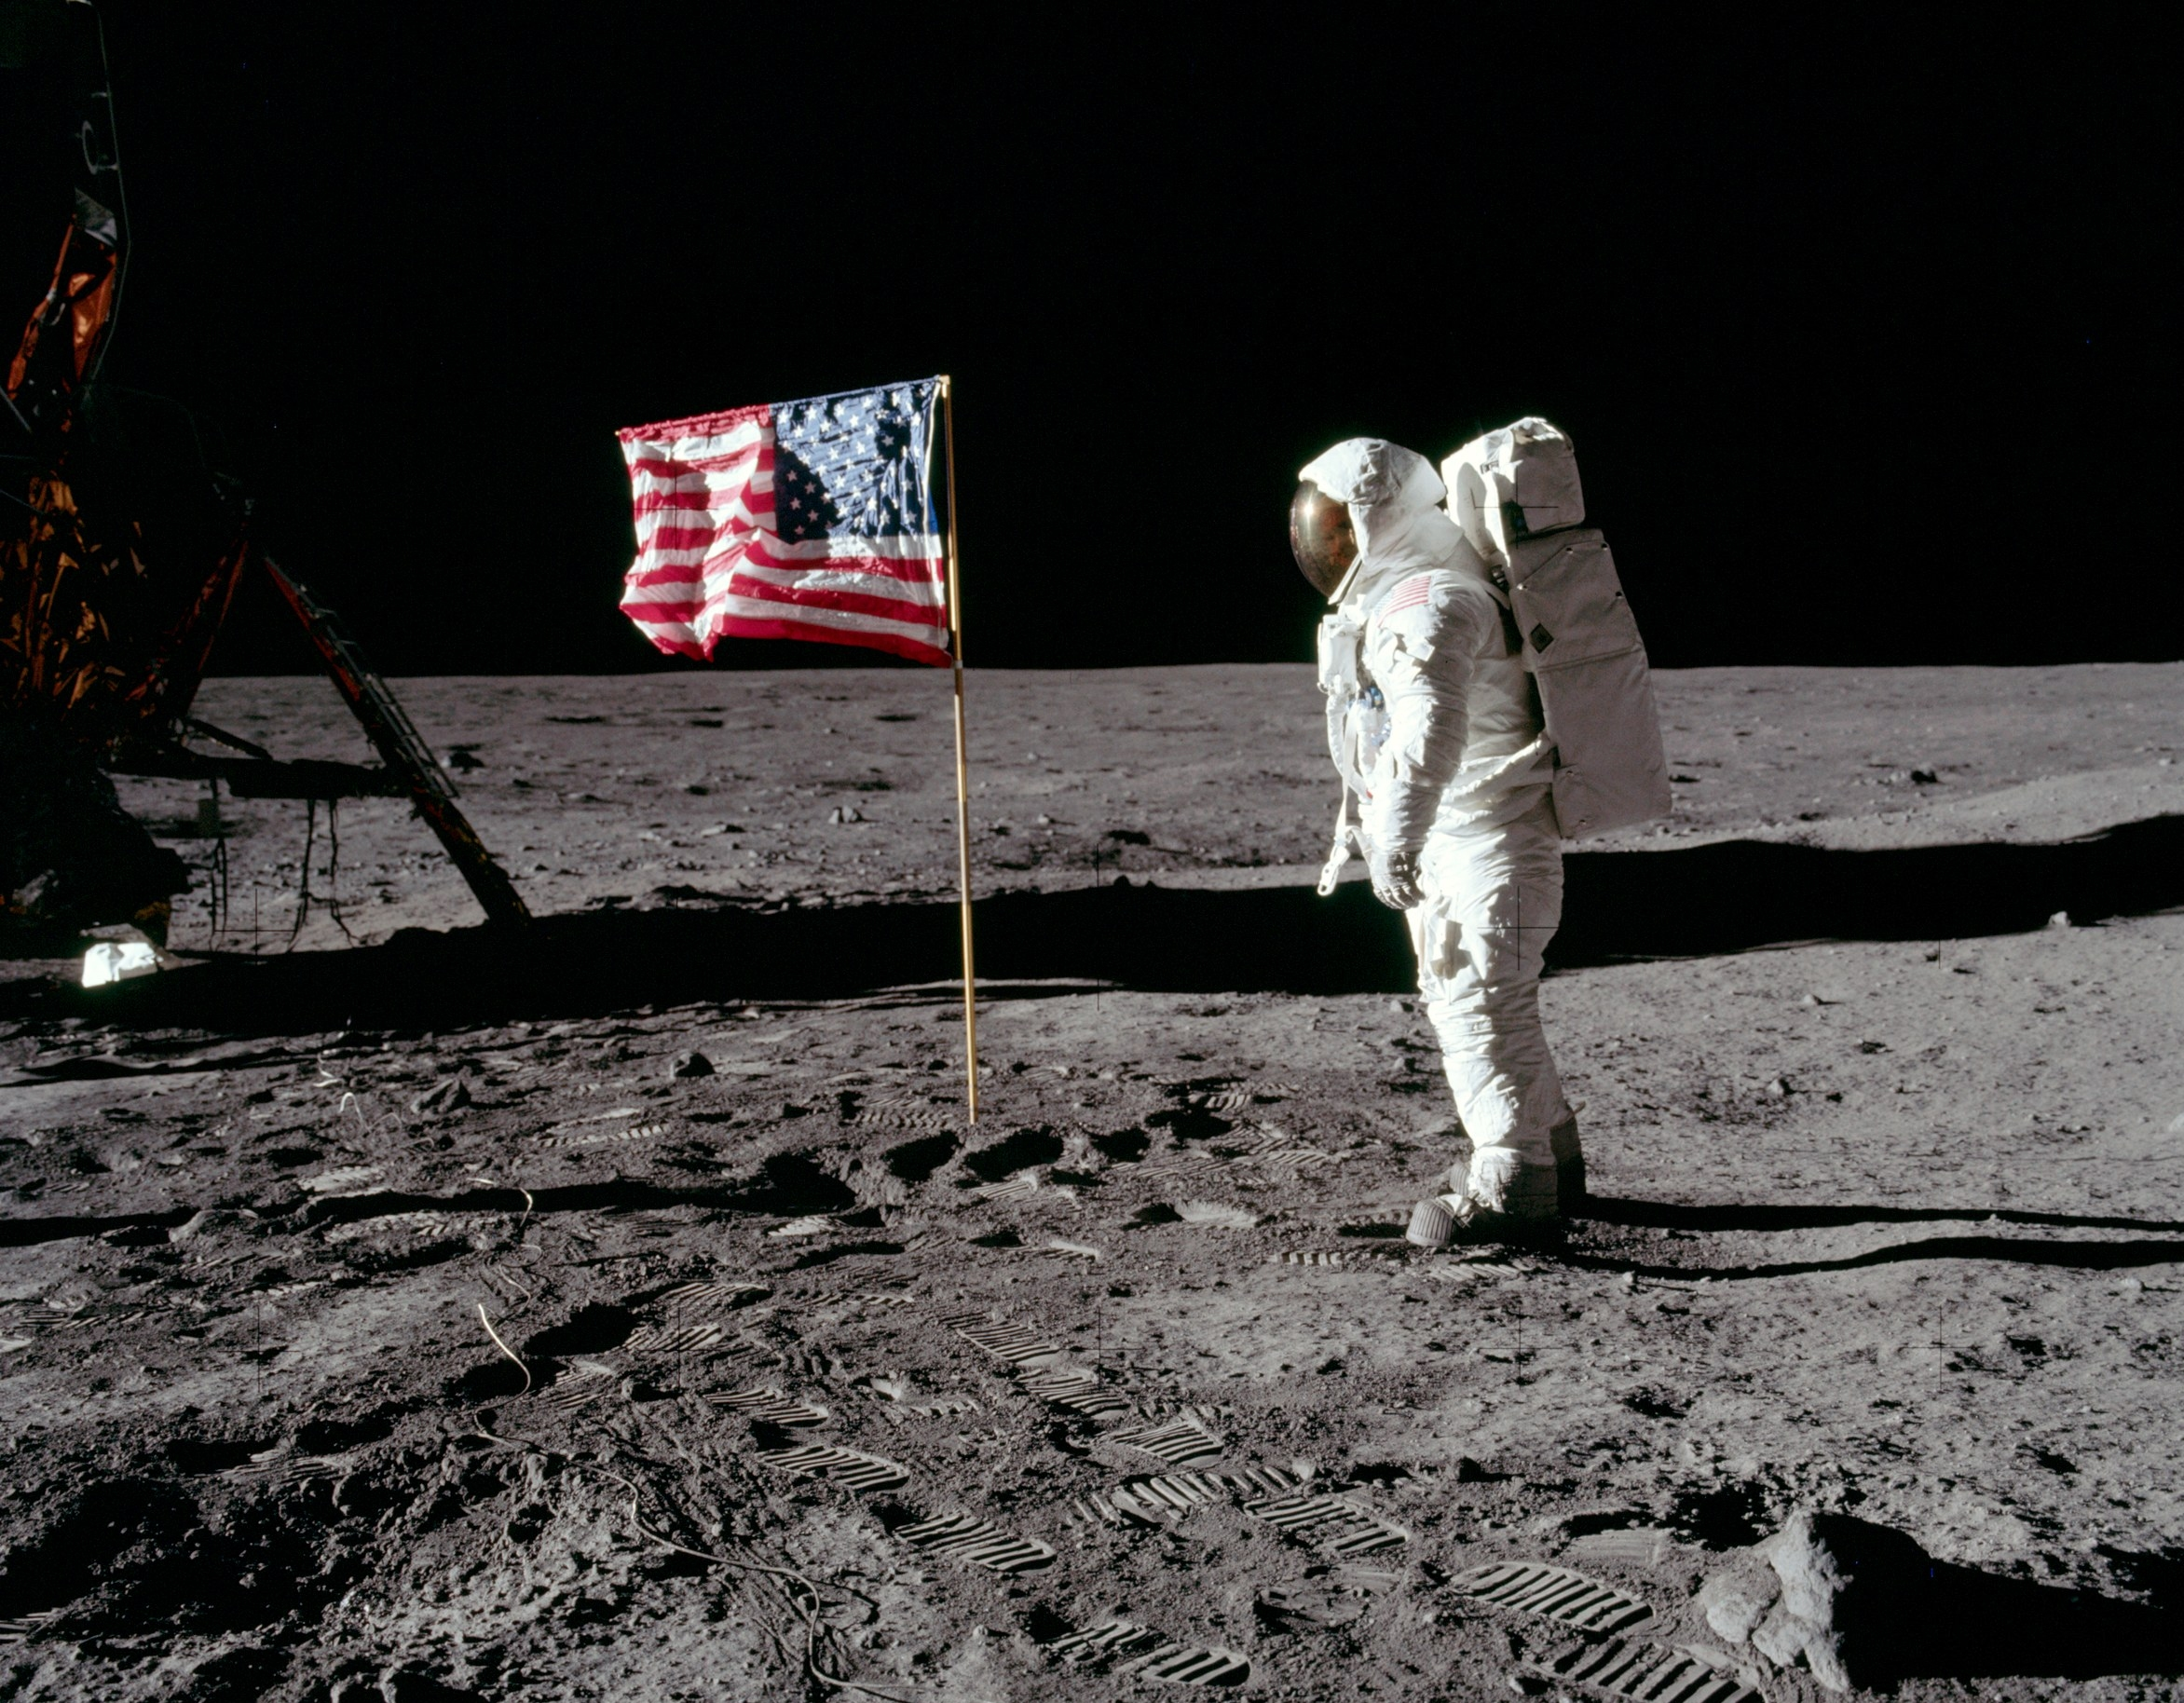 A human on the Moon on July 20, 1969 (Photo by NASA)